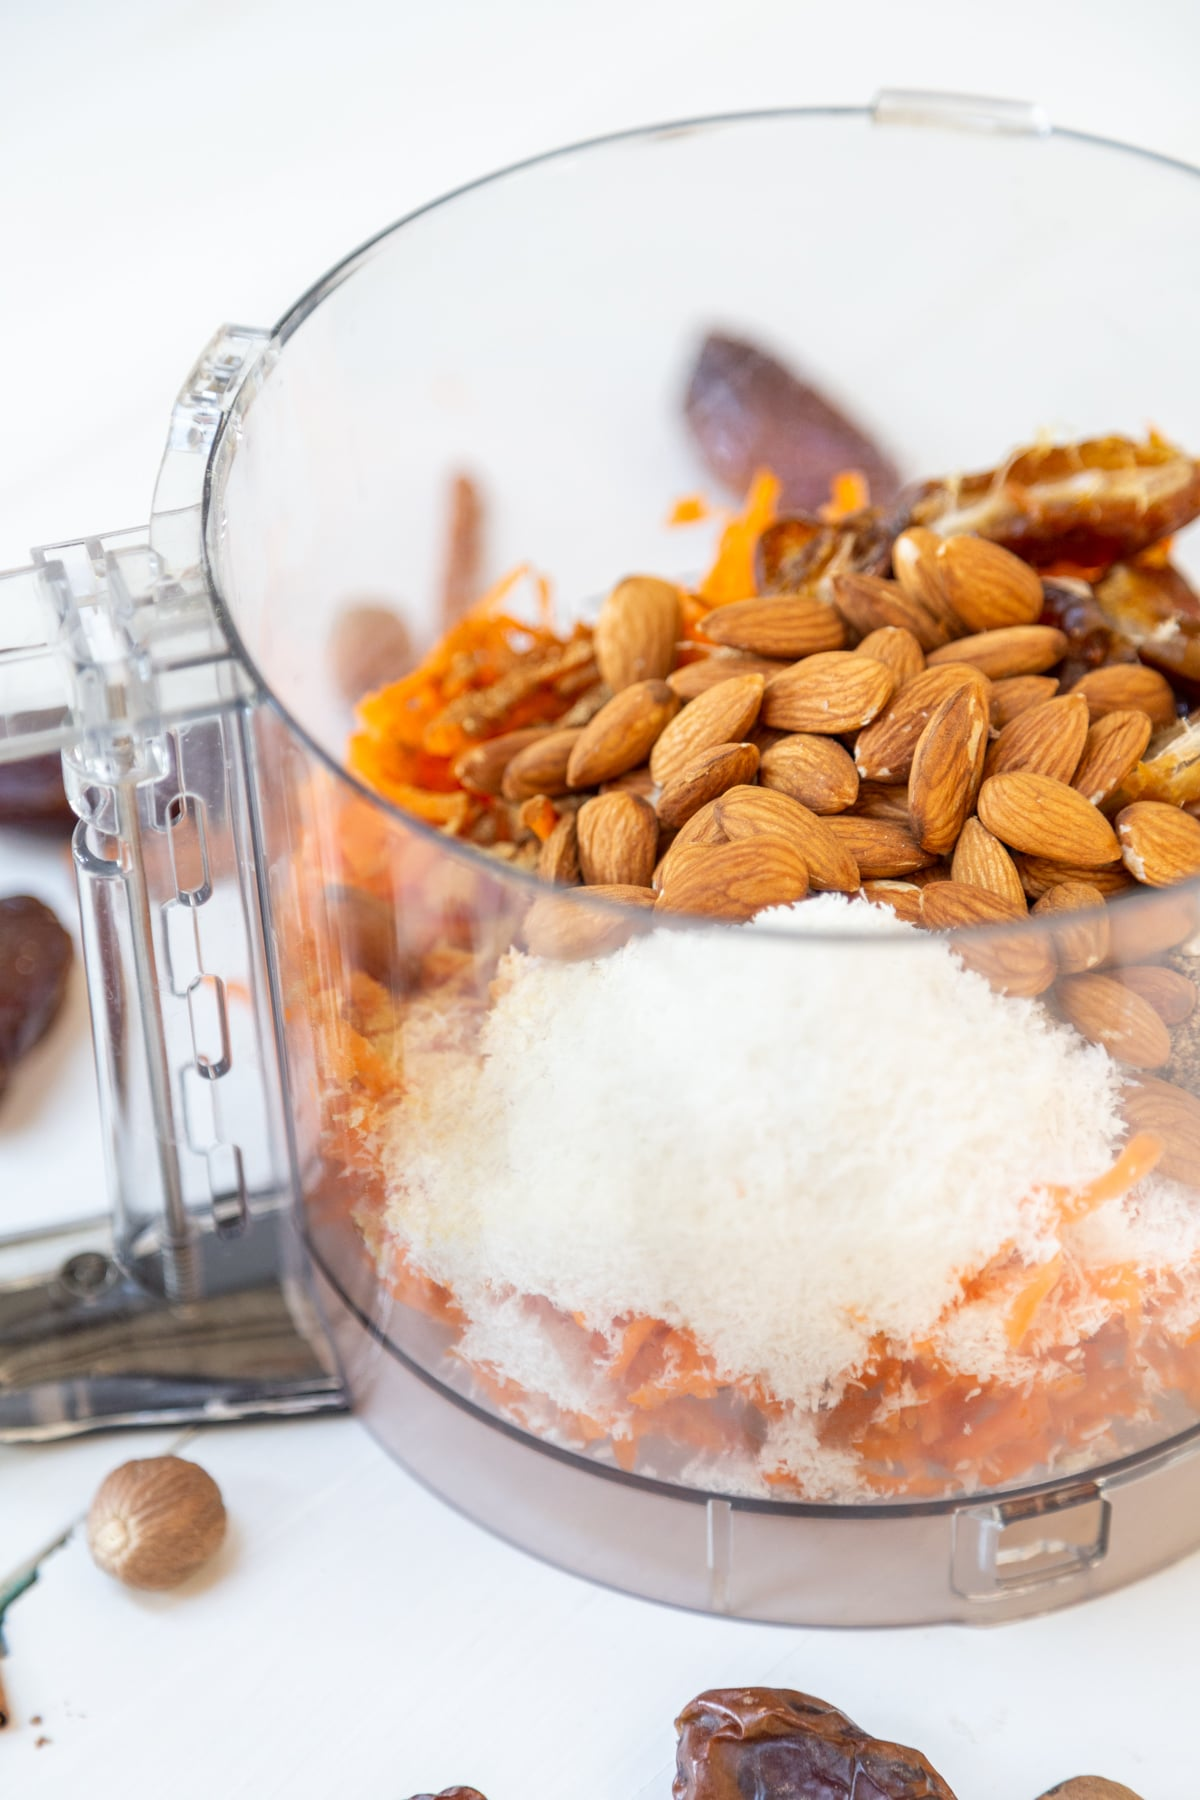 A food processor filled with almonds, dates, shredded coconut and carrots.